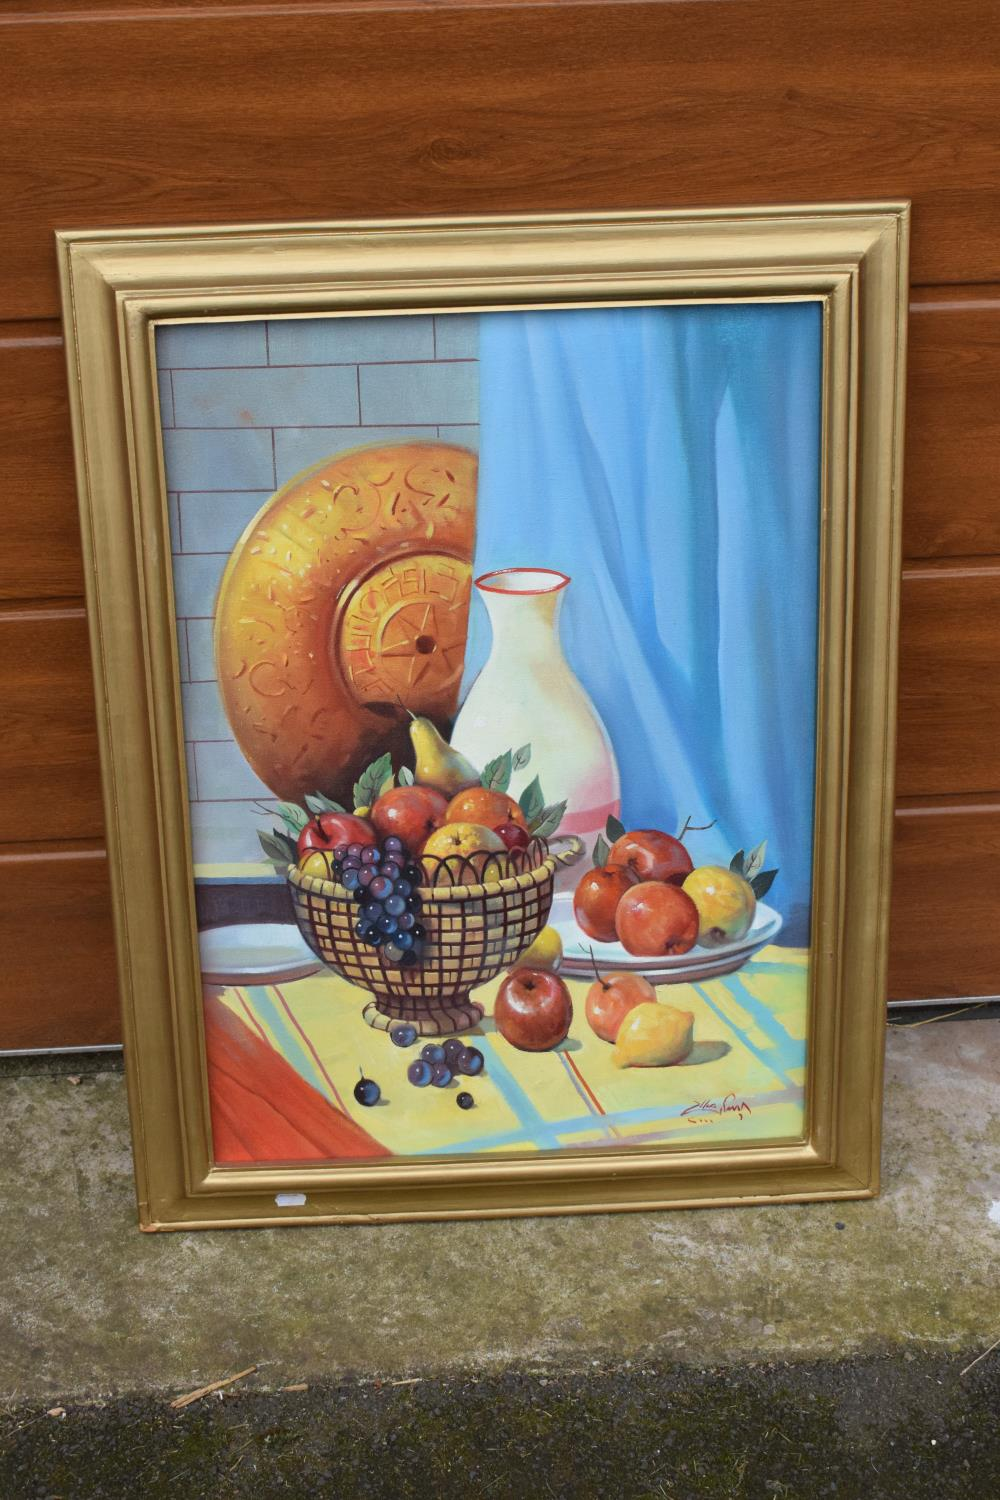 Framed oil painting of a still life scene, signed. - Image 2 of 5